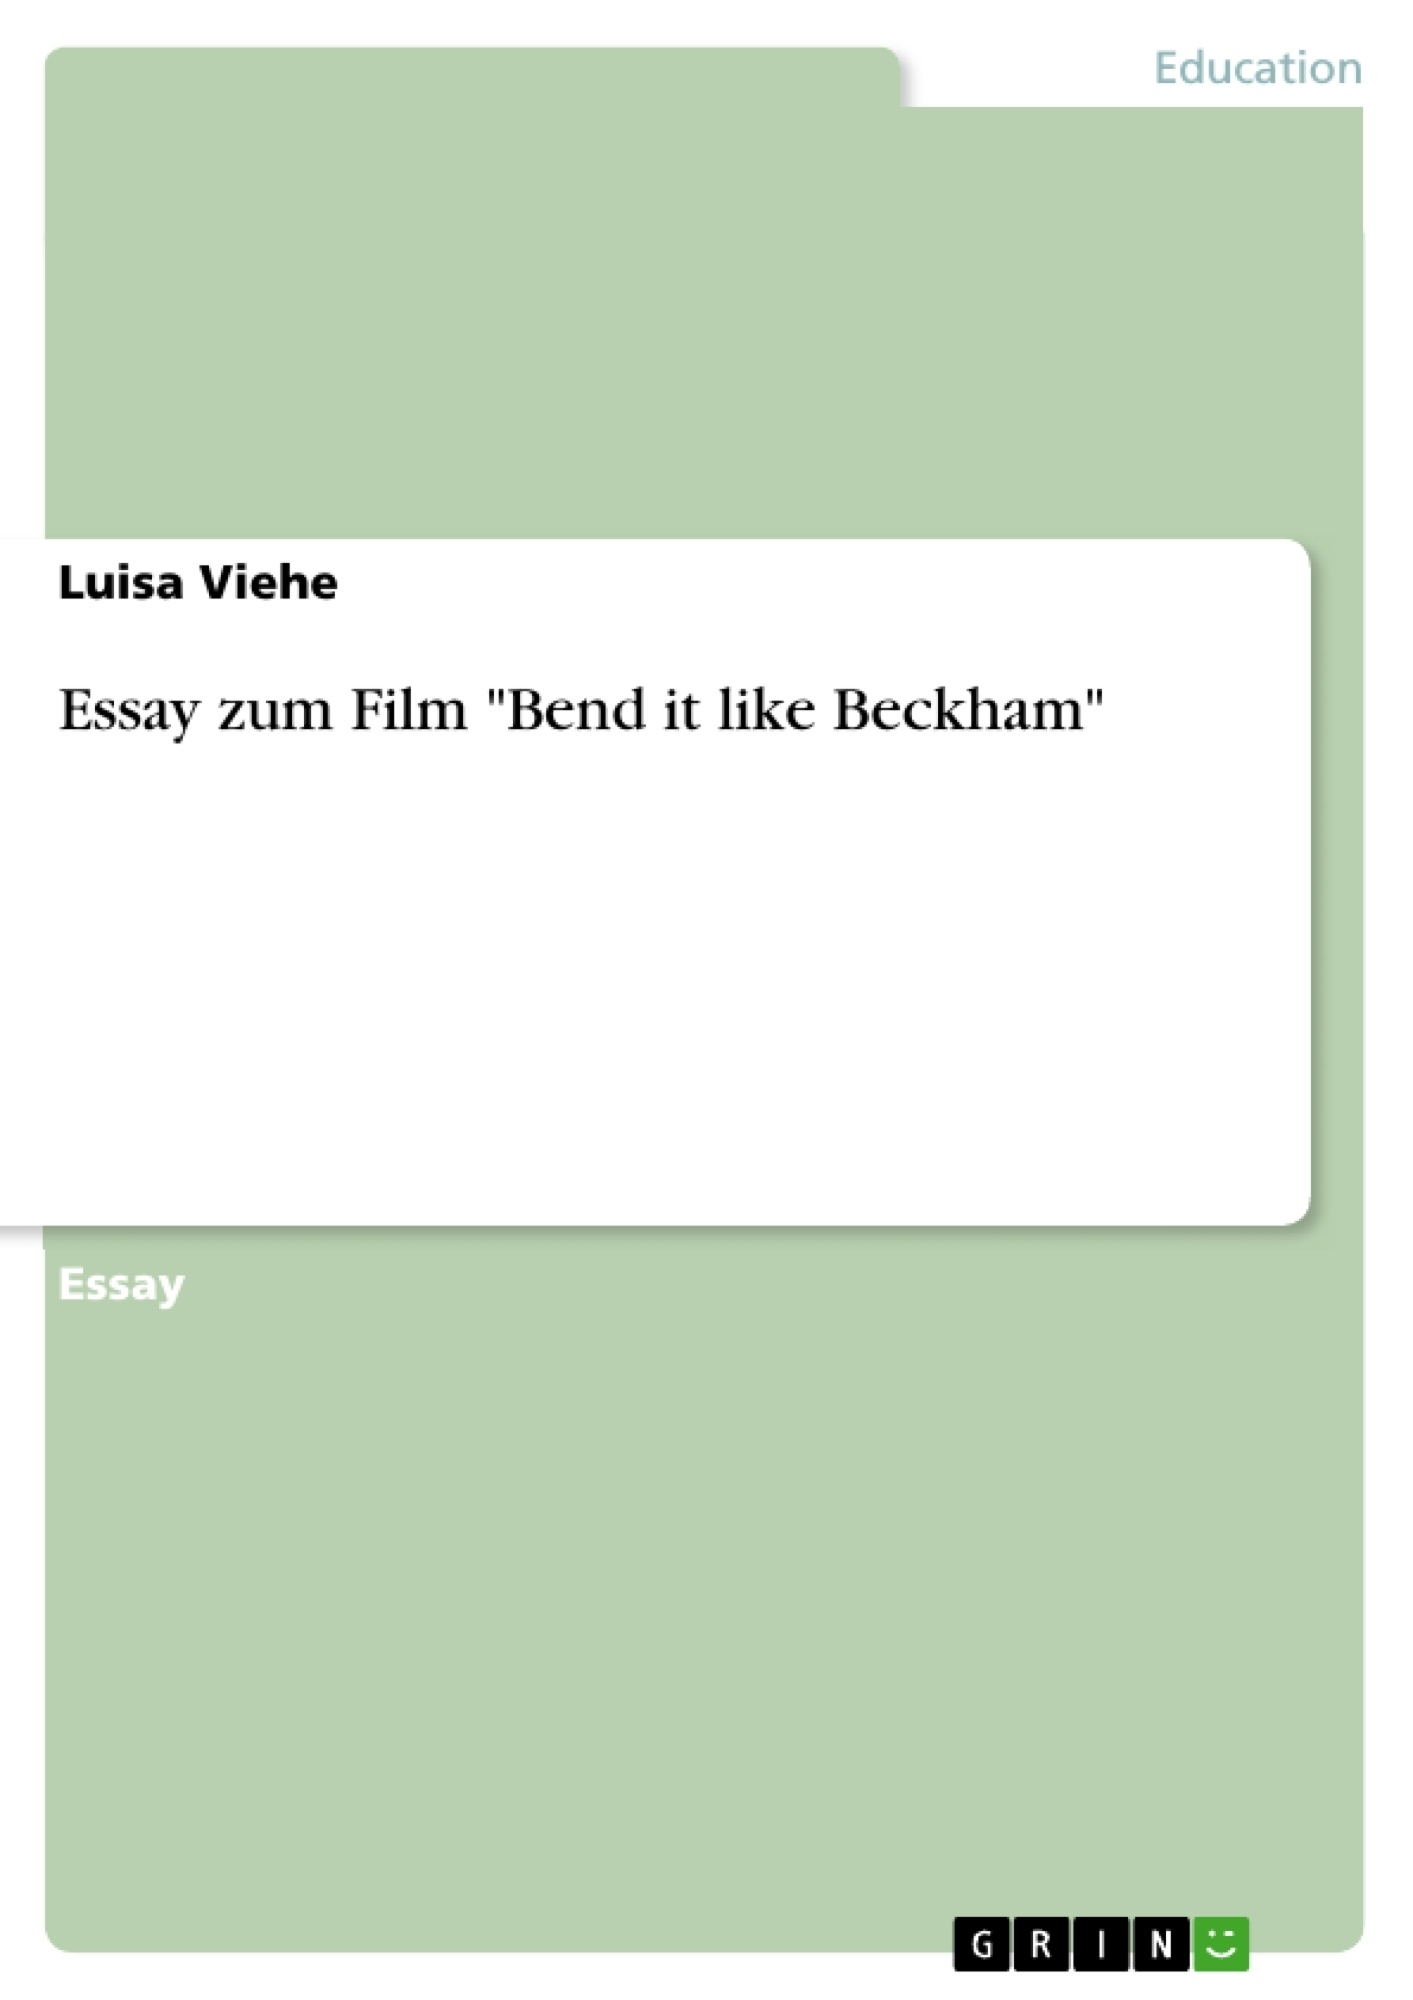 essay zum film bend it like beckham publish your master s  upload your own papers earn money and win an iphone x